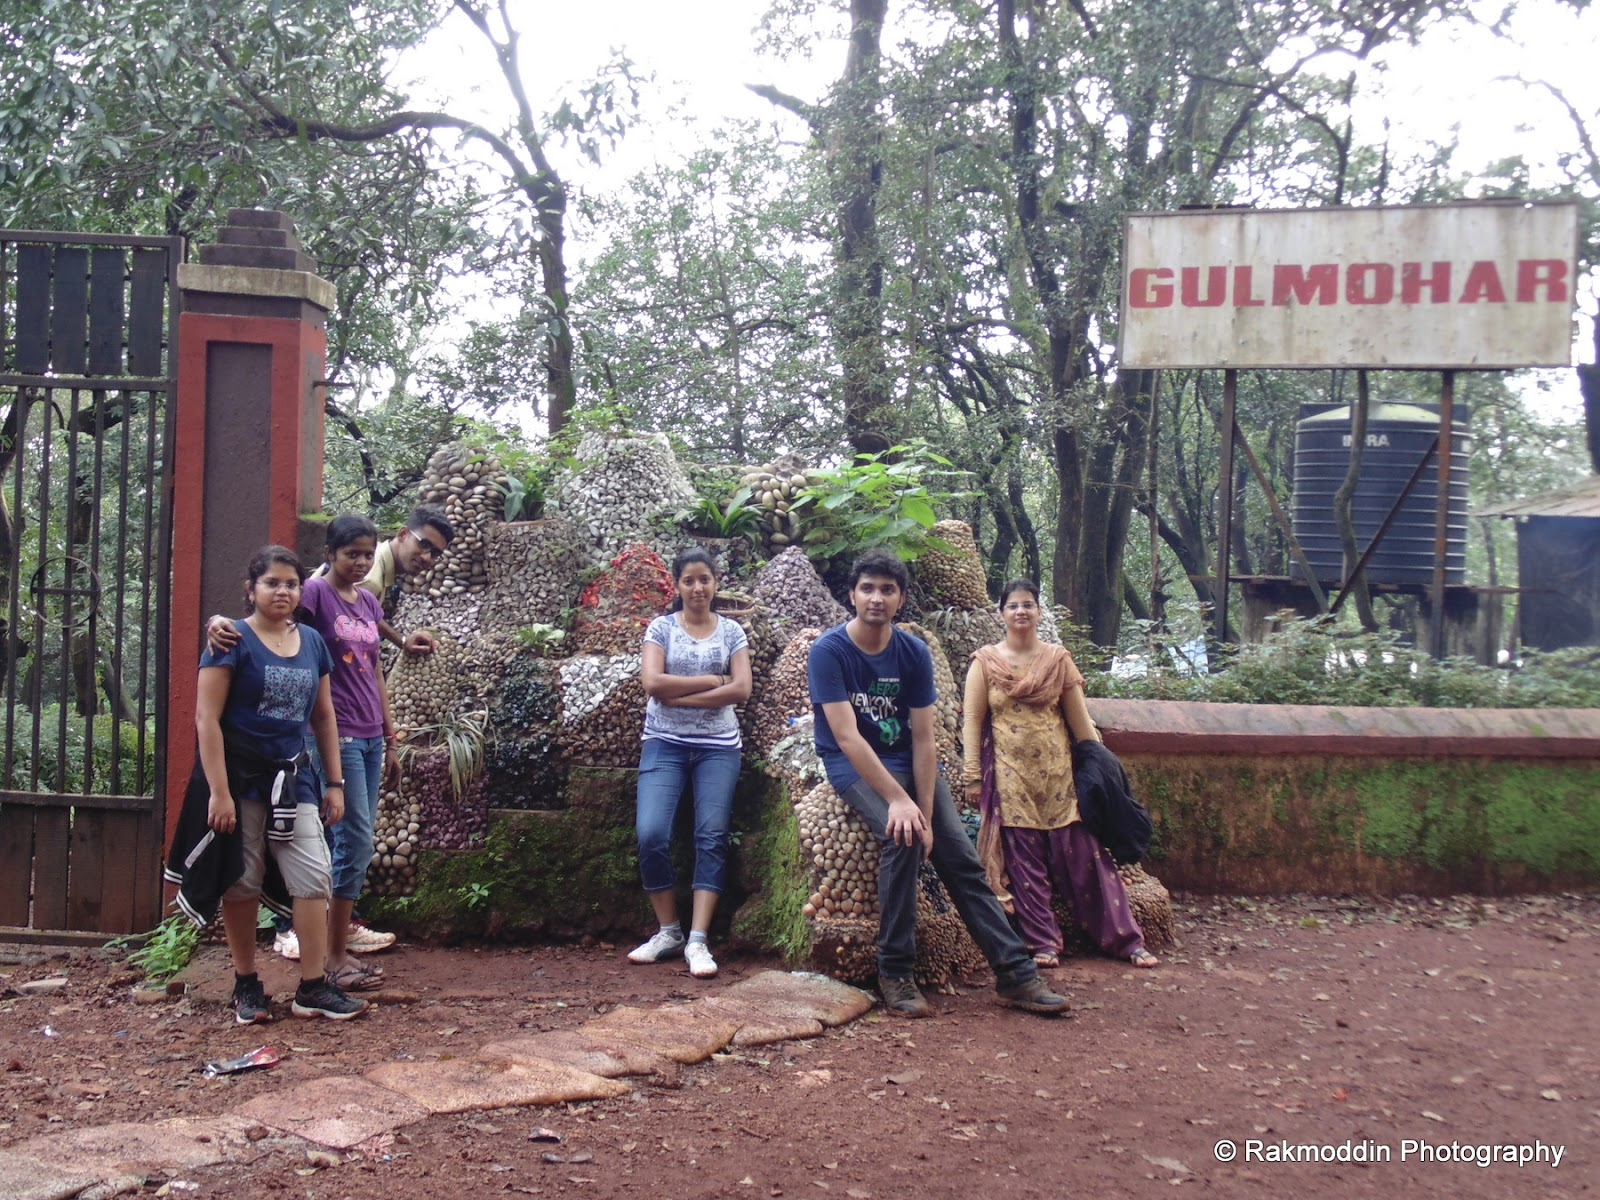 Matheran - A Picturesque Hill Station of Maharashtra